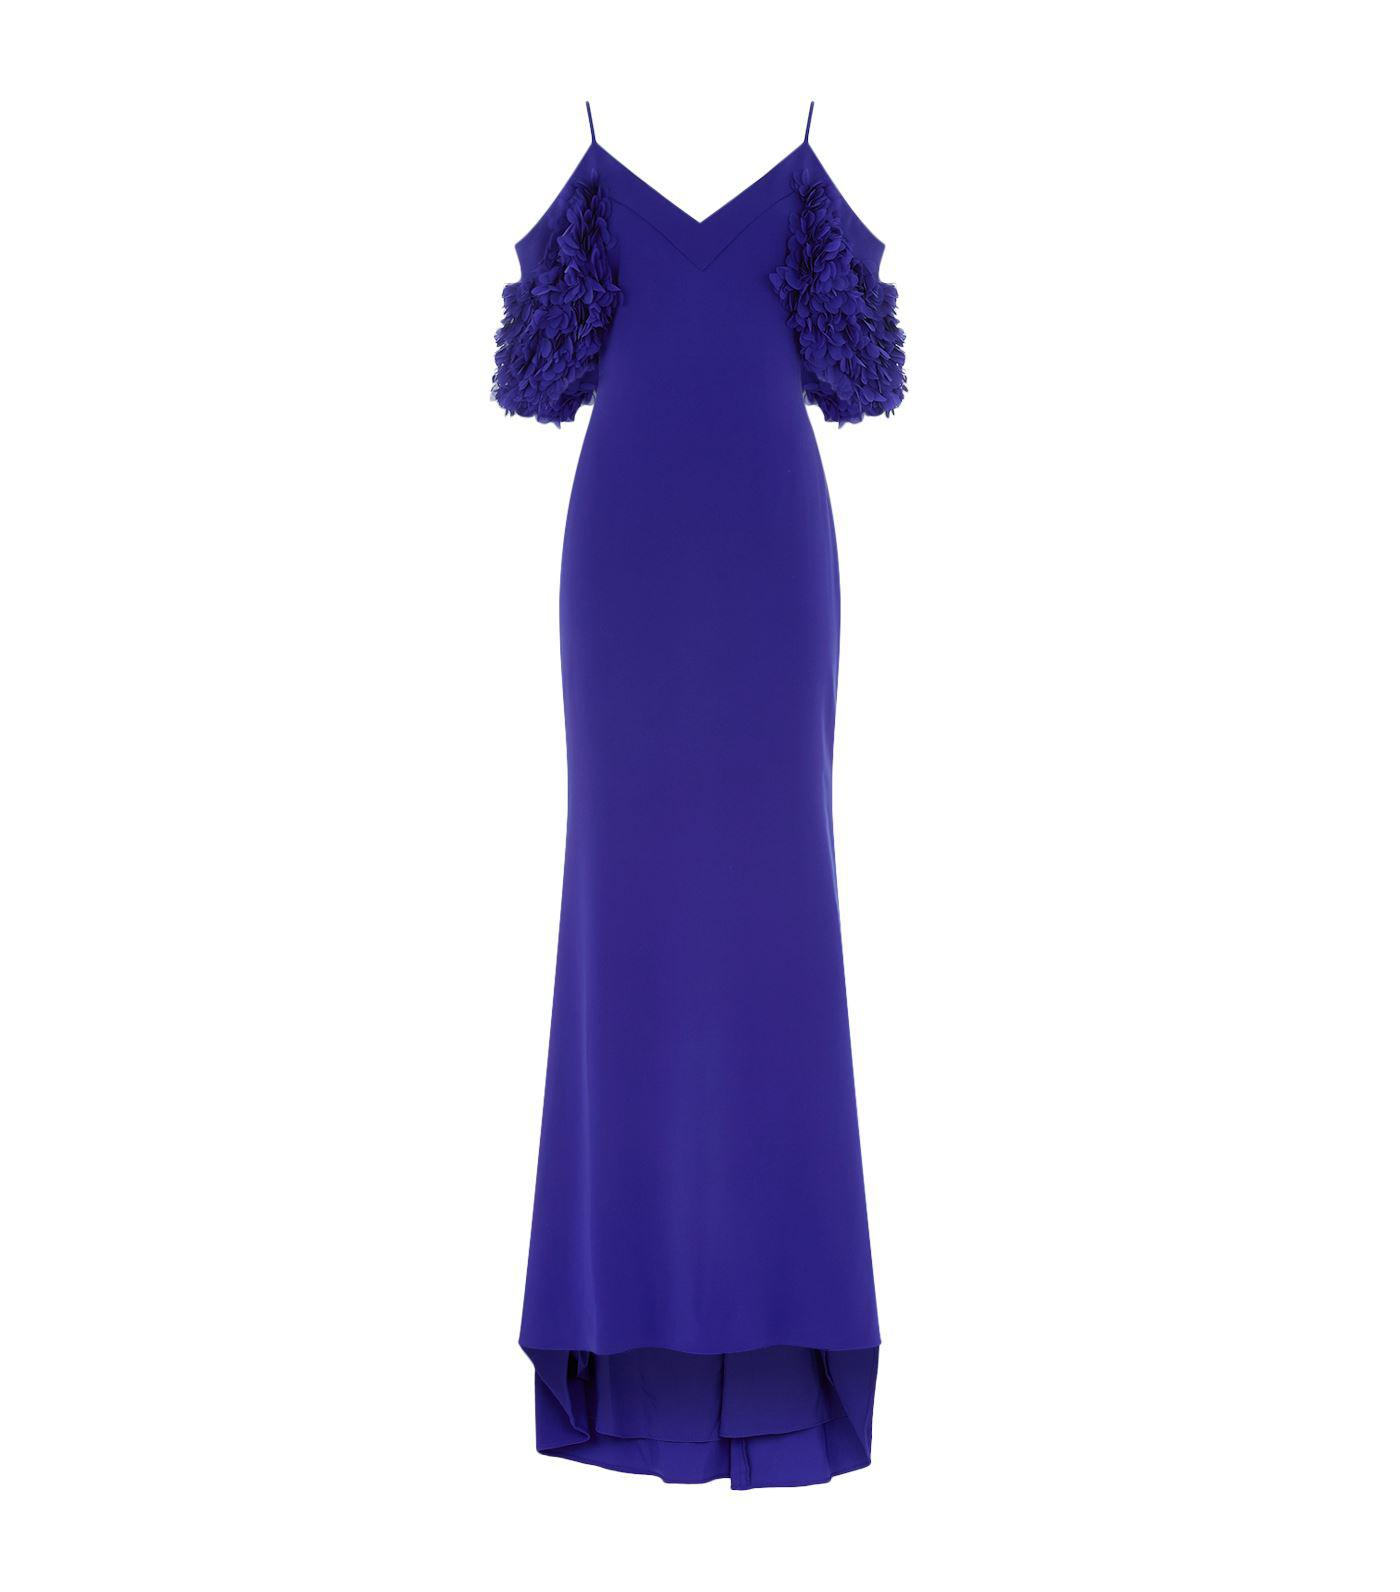 Lyst - Badgley Mischka Petal Cold-shoulder Sleeve Gown in Blue